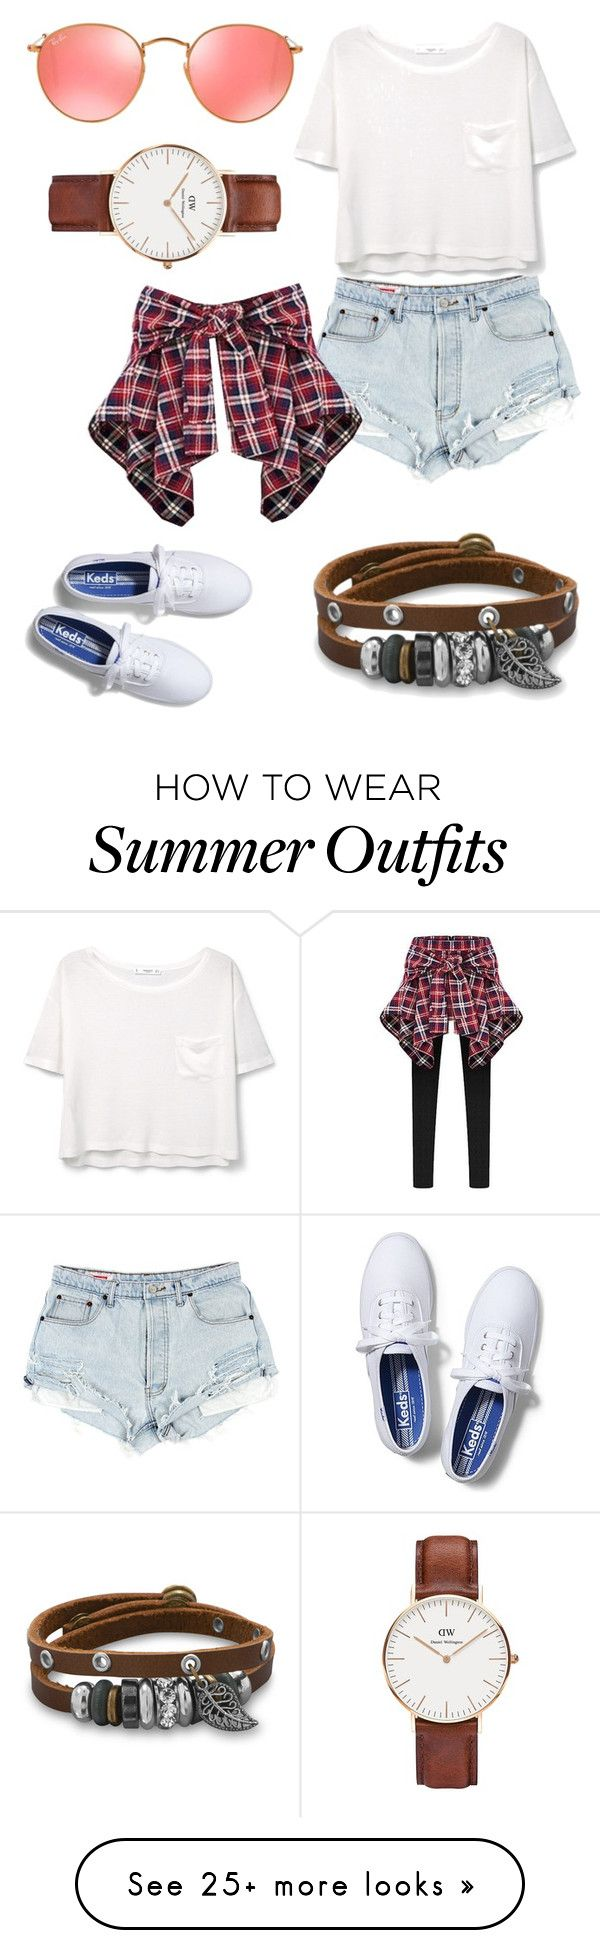 """Chic but comfy outdoorsy outfit"" by bbysplatt104 on Polyvore featuring MANGO, Keds, Ray-Ban, BillyTheTree, Daniel Wellington and Summer"